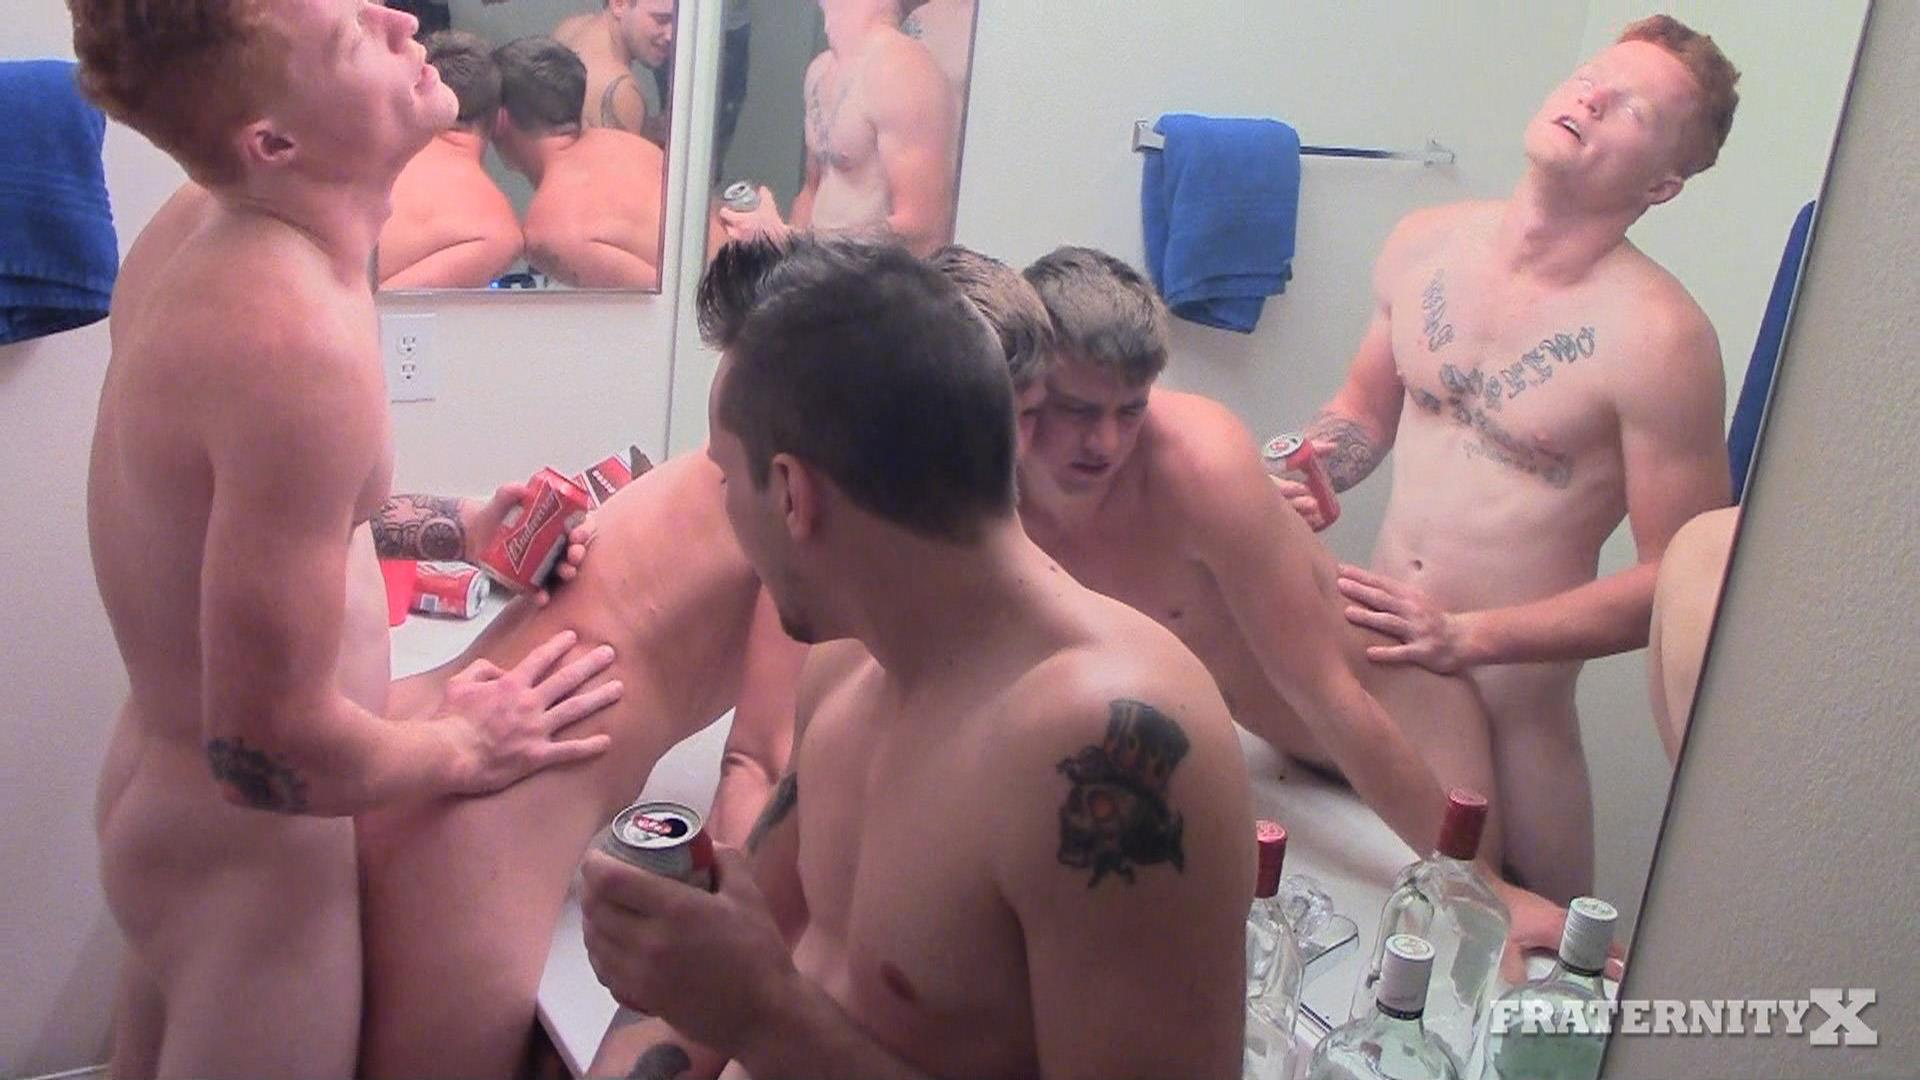 Amateur gay shower movie xxx it seems that 1